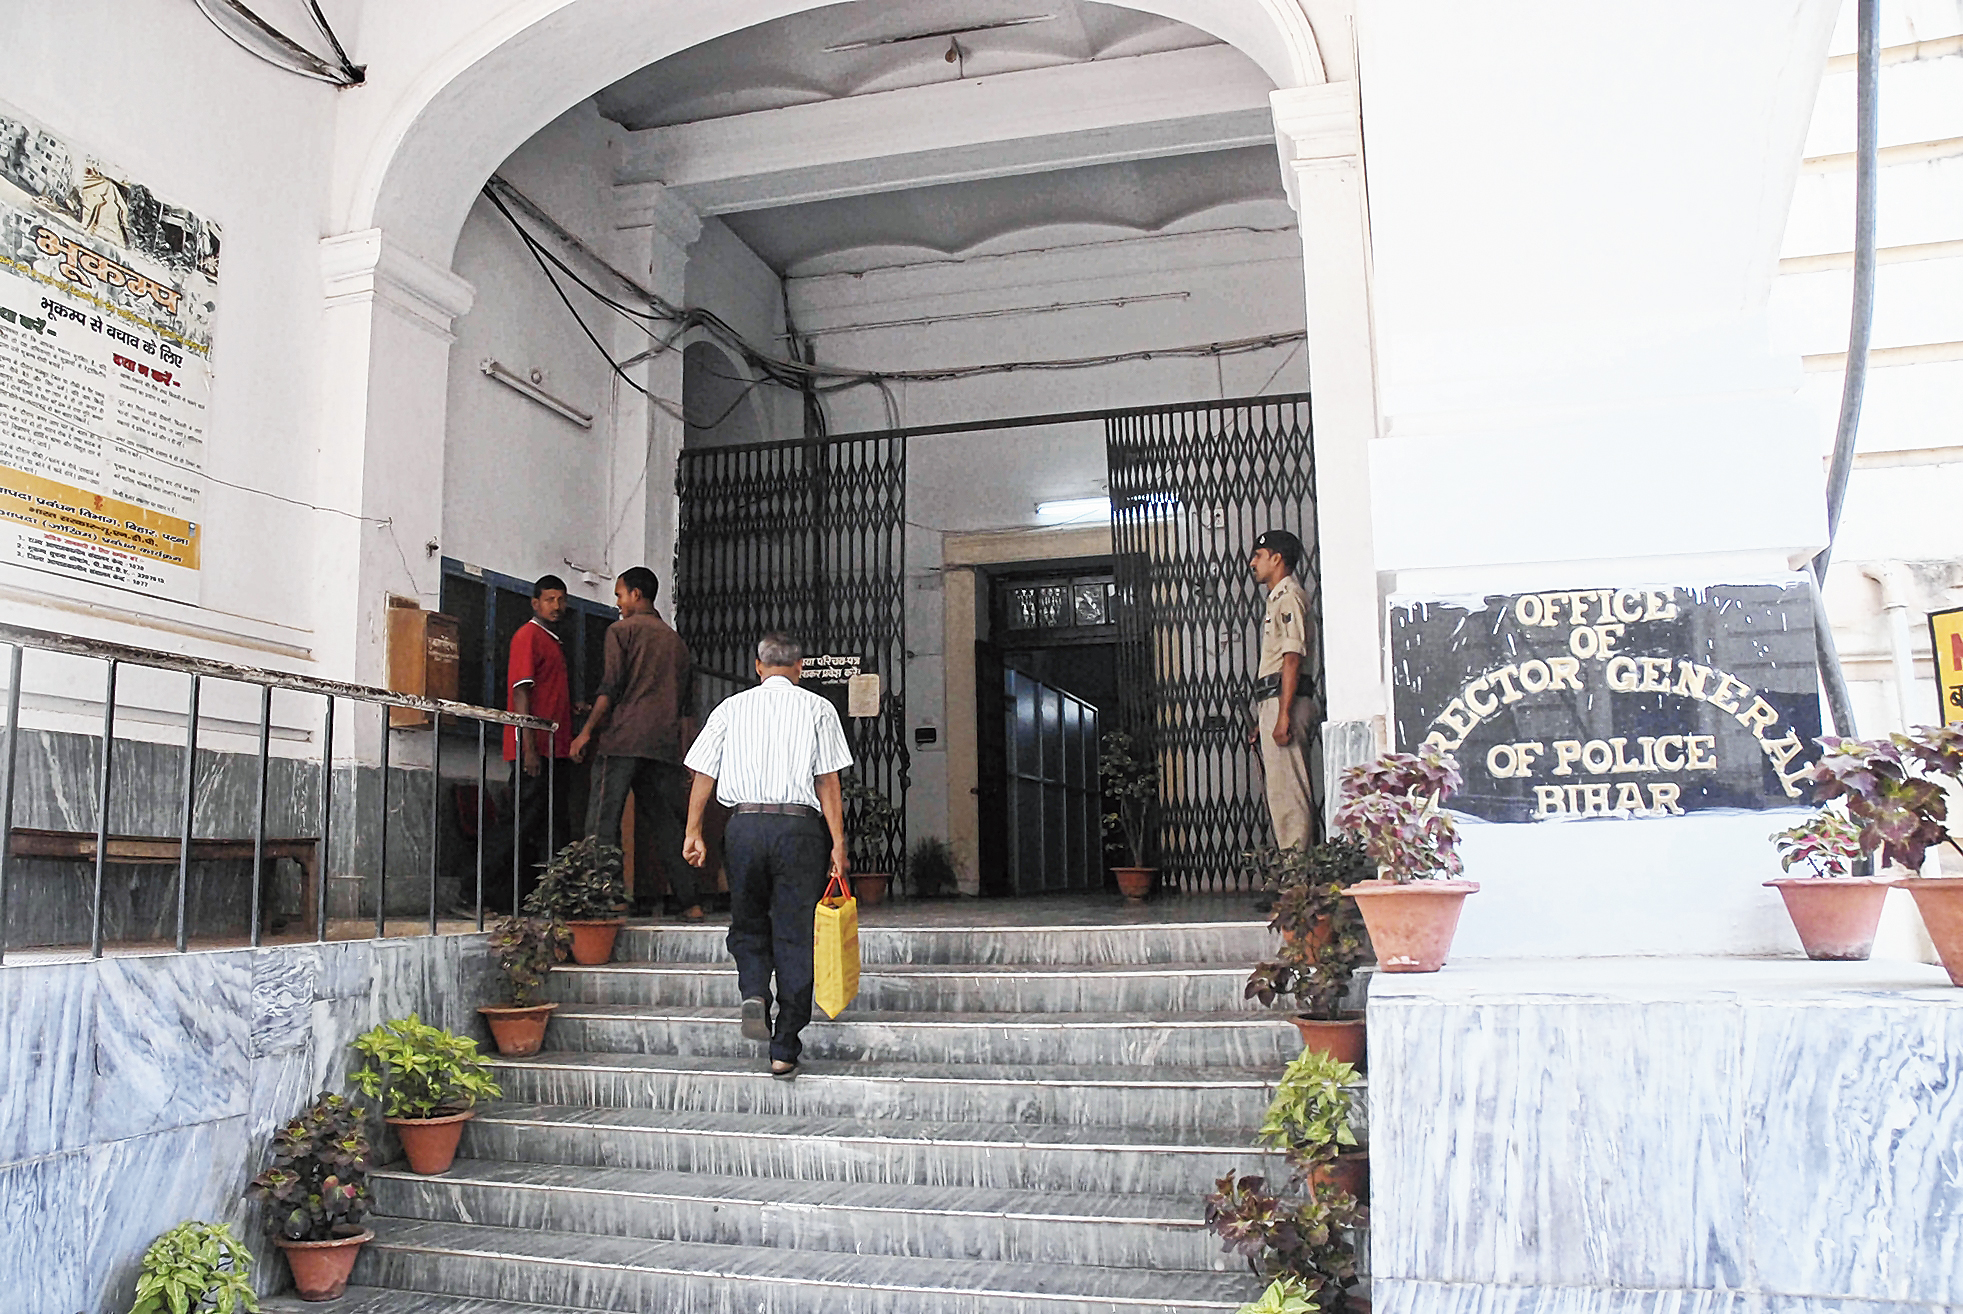 The police headquarters